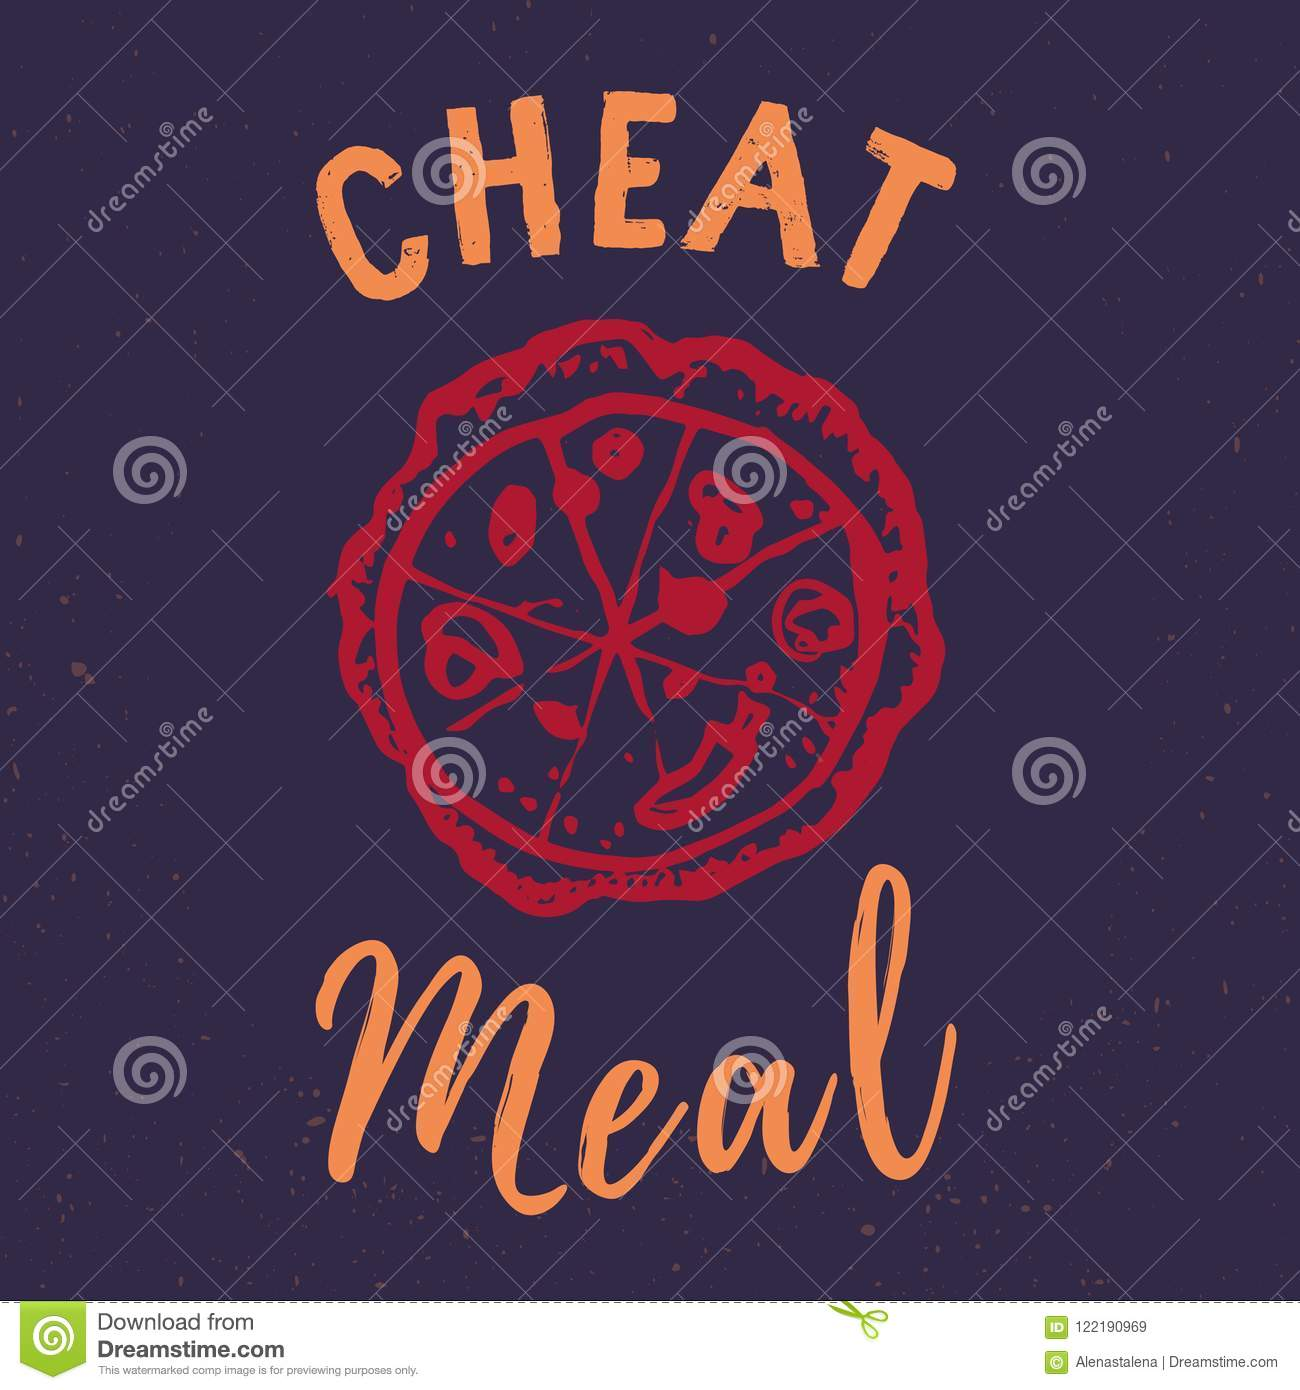 Restaurant city fast cooking cheat